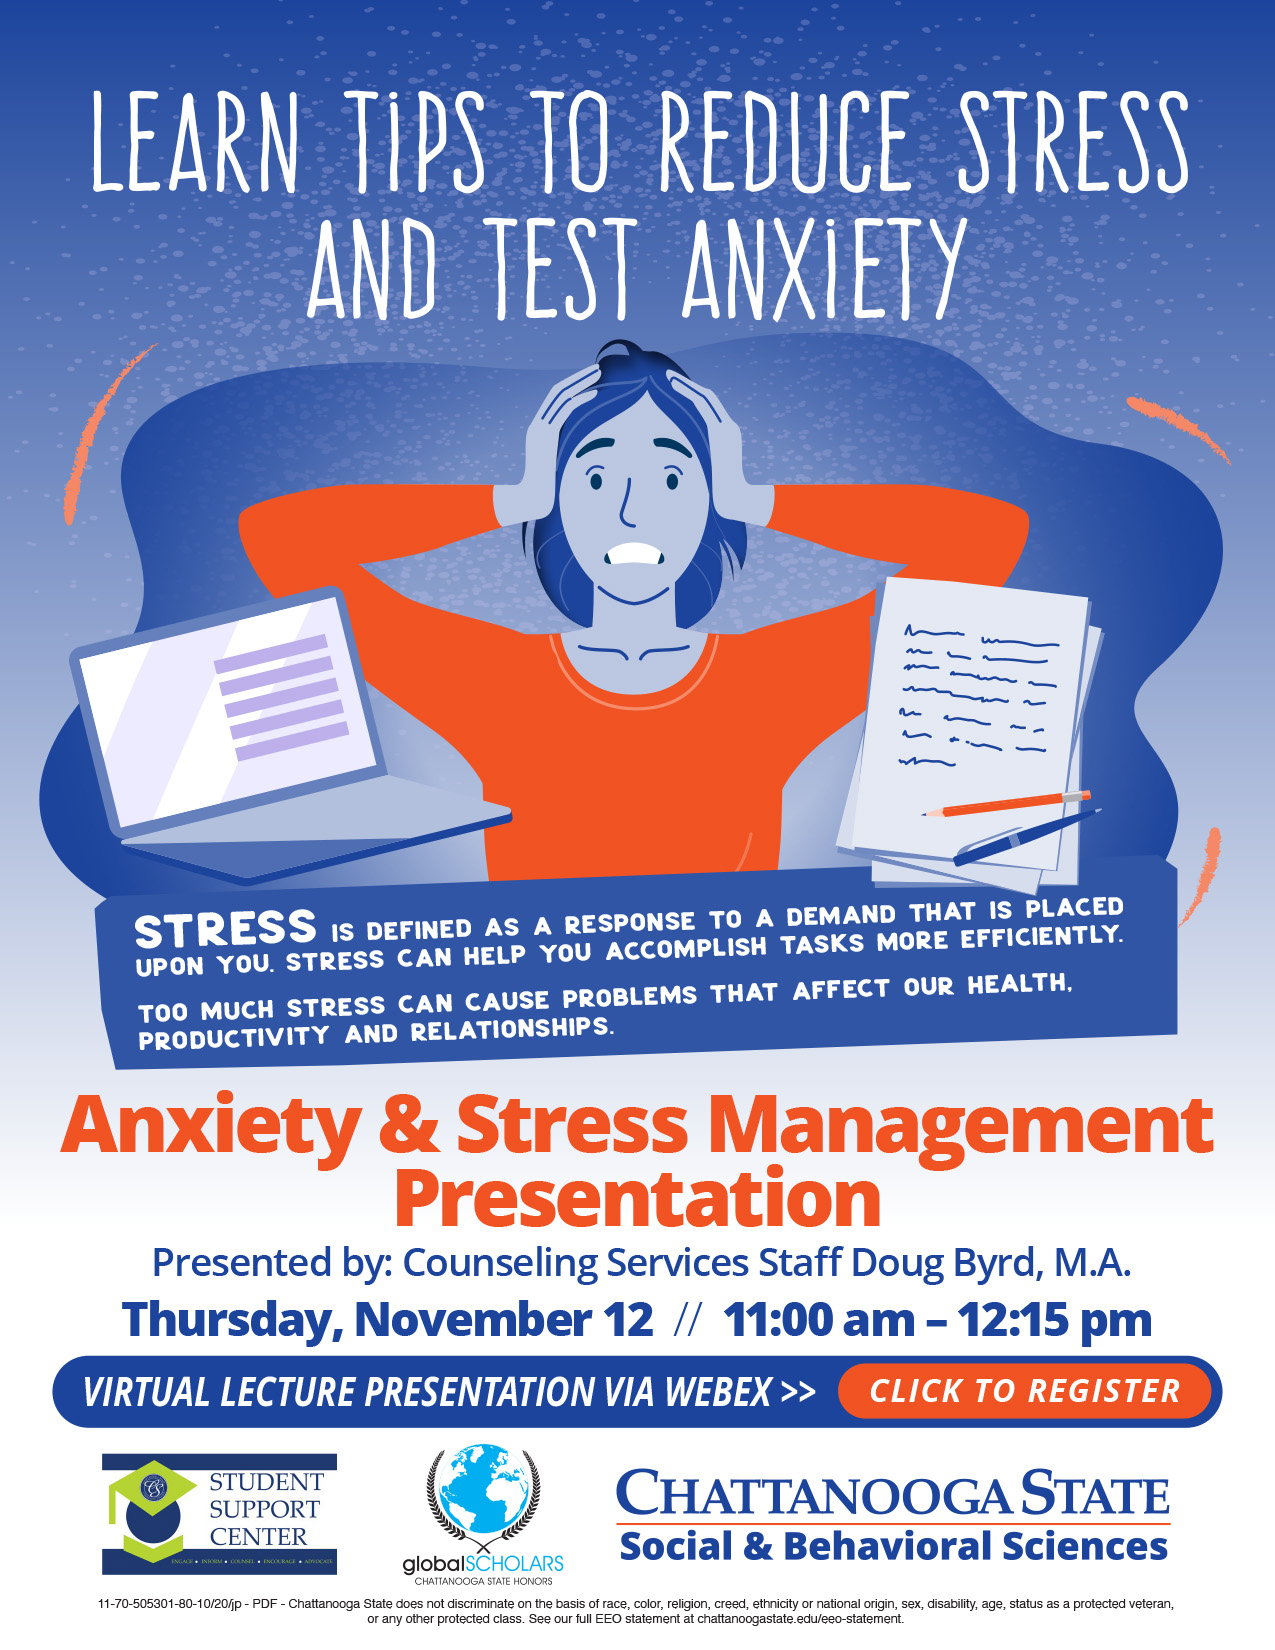 anxiety and stress relief presentation flyer